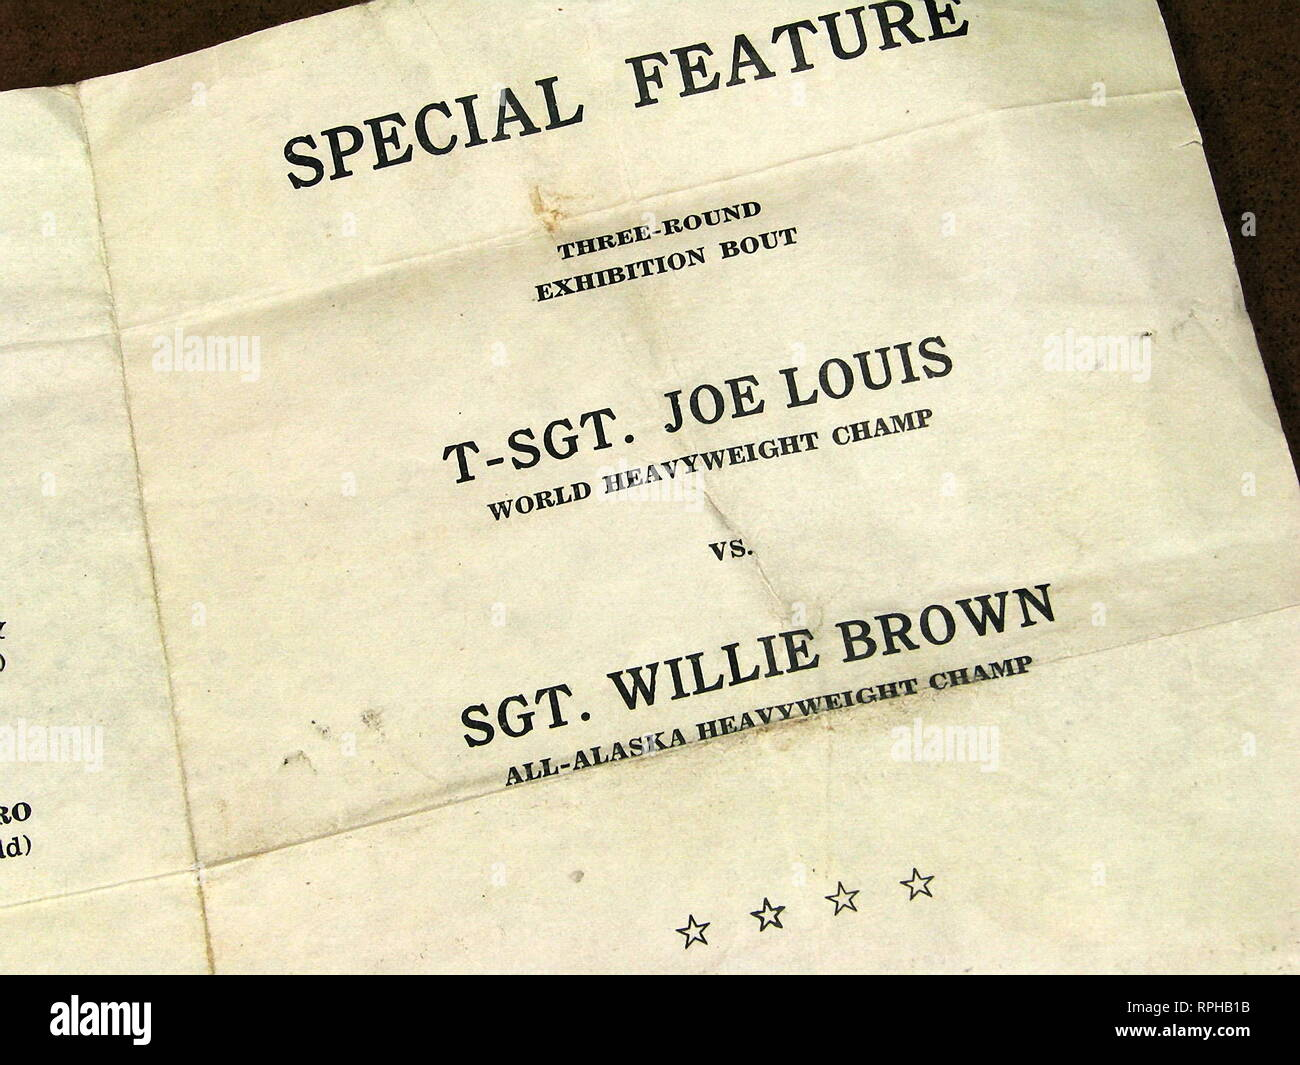 Rare and Vintage Collectible TSgt Joe Louis Fort Richardson Alaska Military Boxing Card 1945. - Stock Image